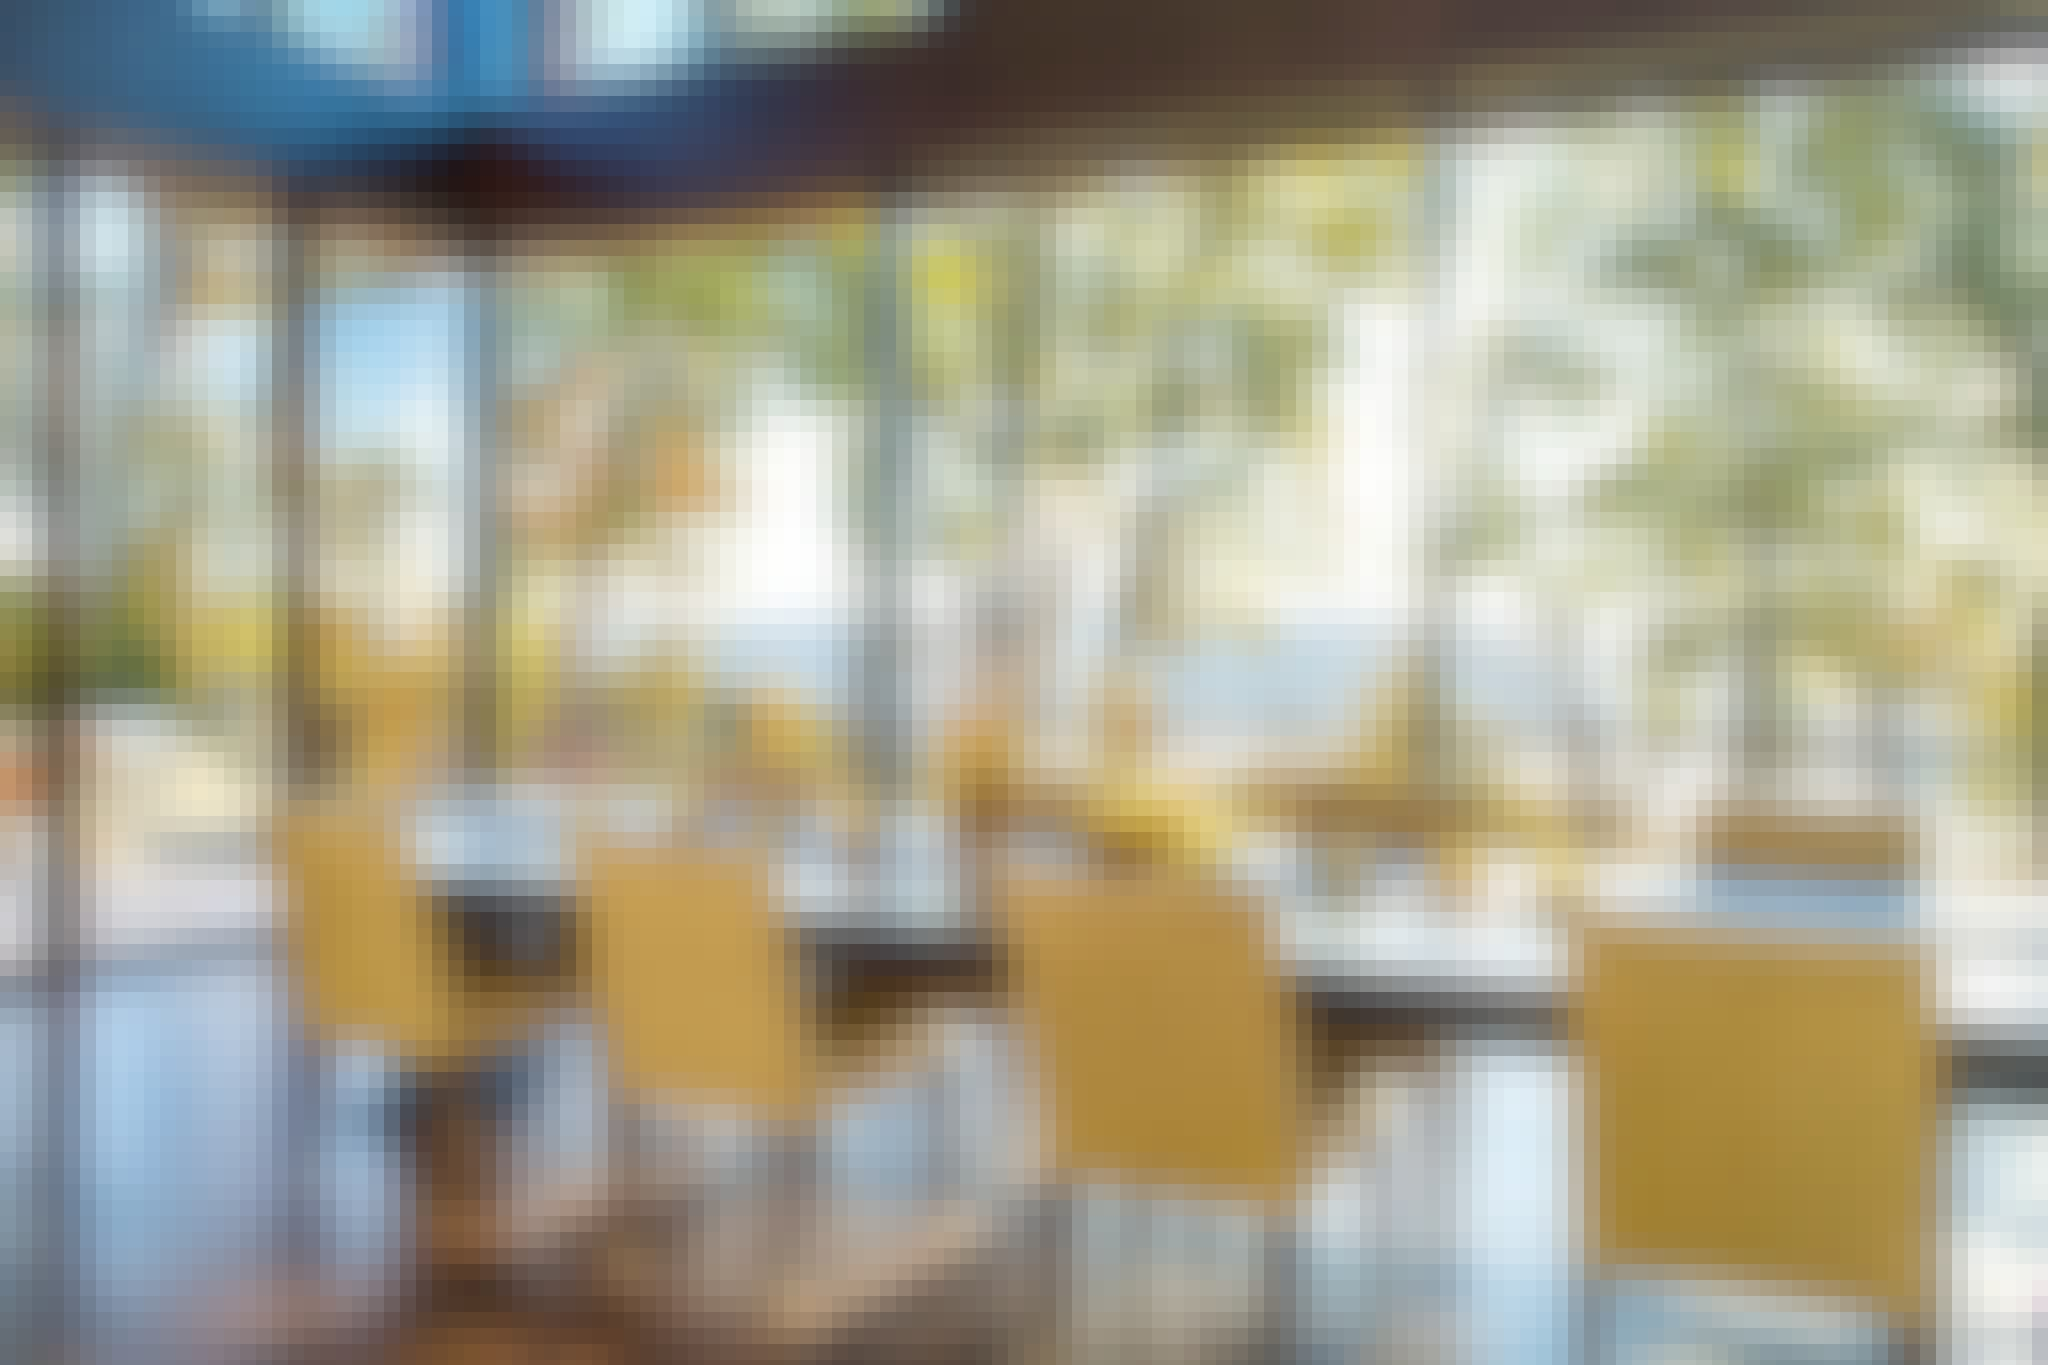 beautiful tree lined view in dining room through cero minimal sliding glass wall